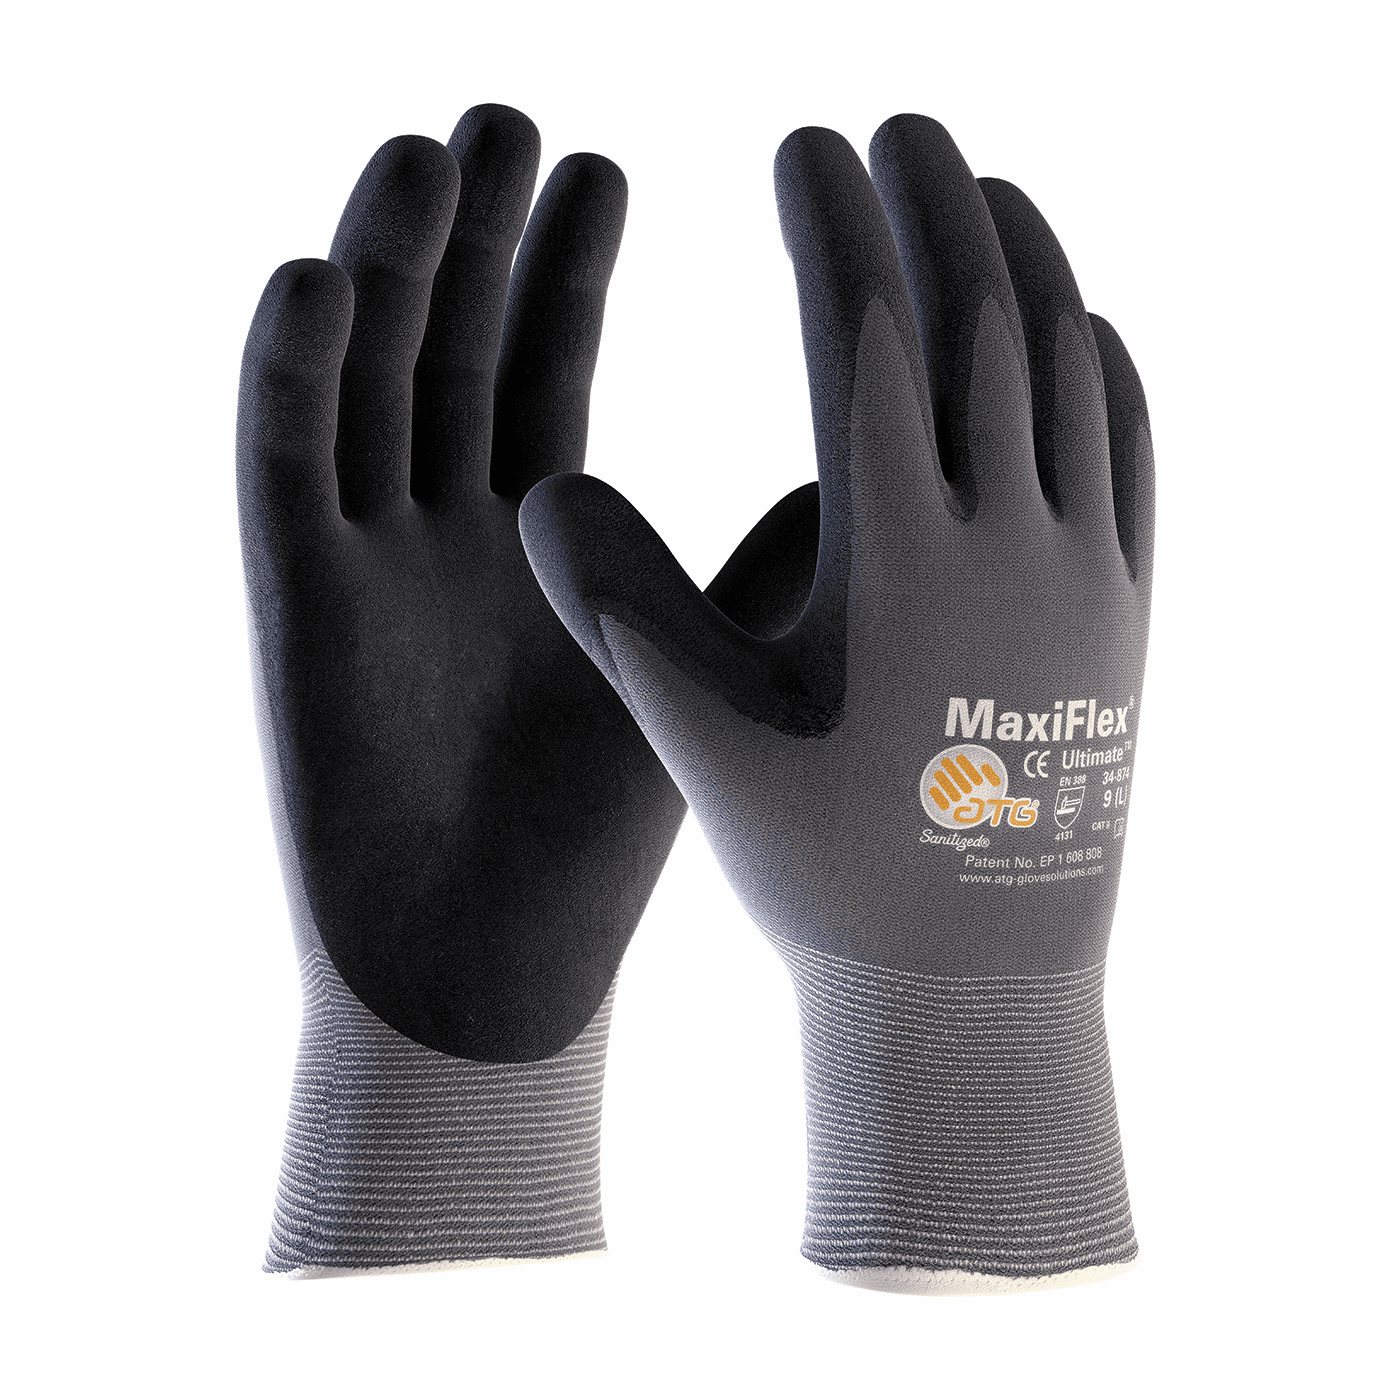 PIP, MaxiFlex� Ultimate� Seamless Knit Nylon / Lycra Glove with Nitrile Coated Micro-Foam Grip on Palm & Fingers